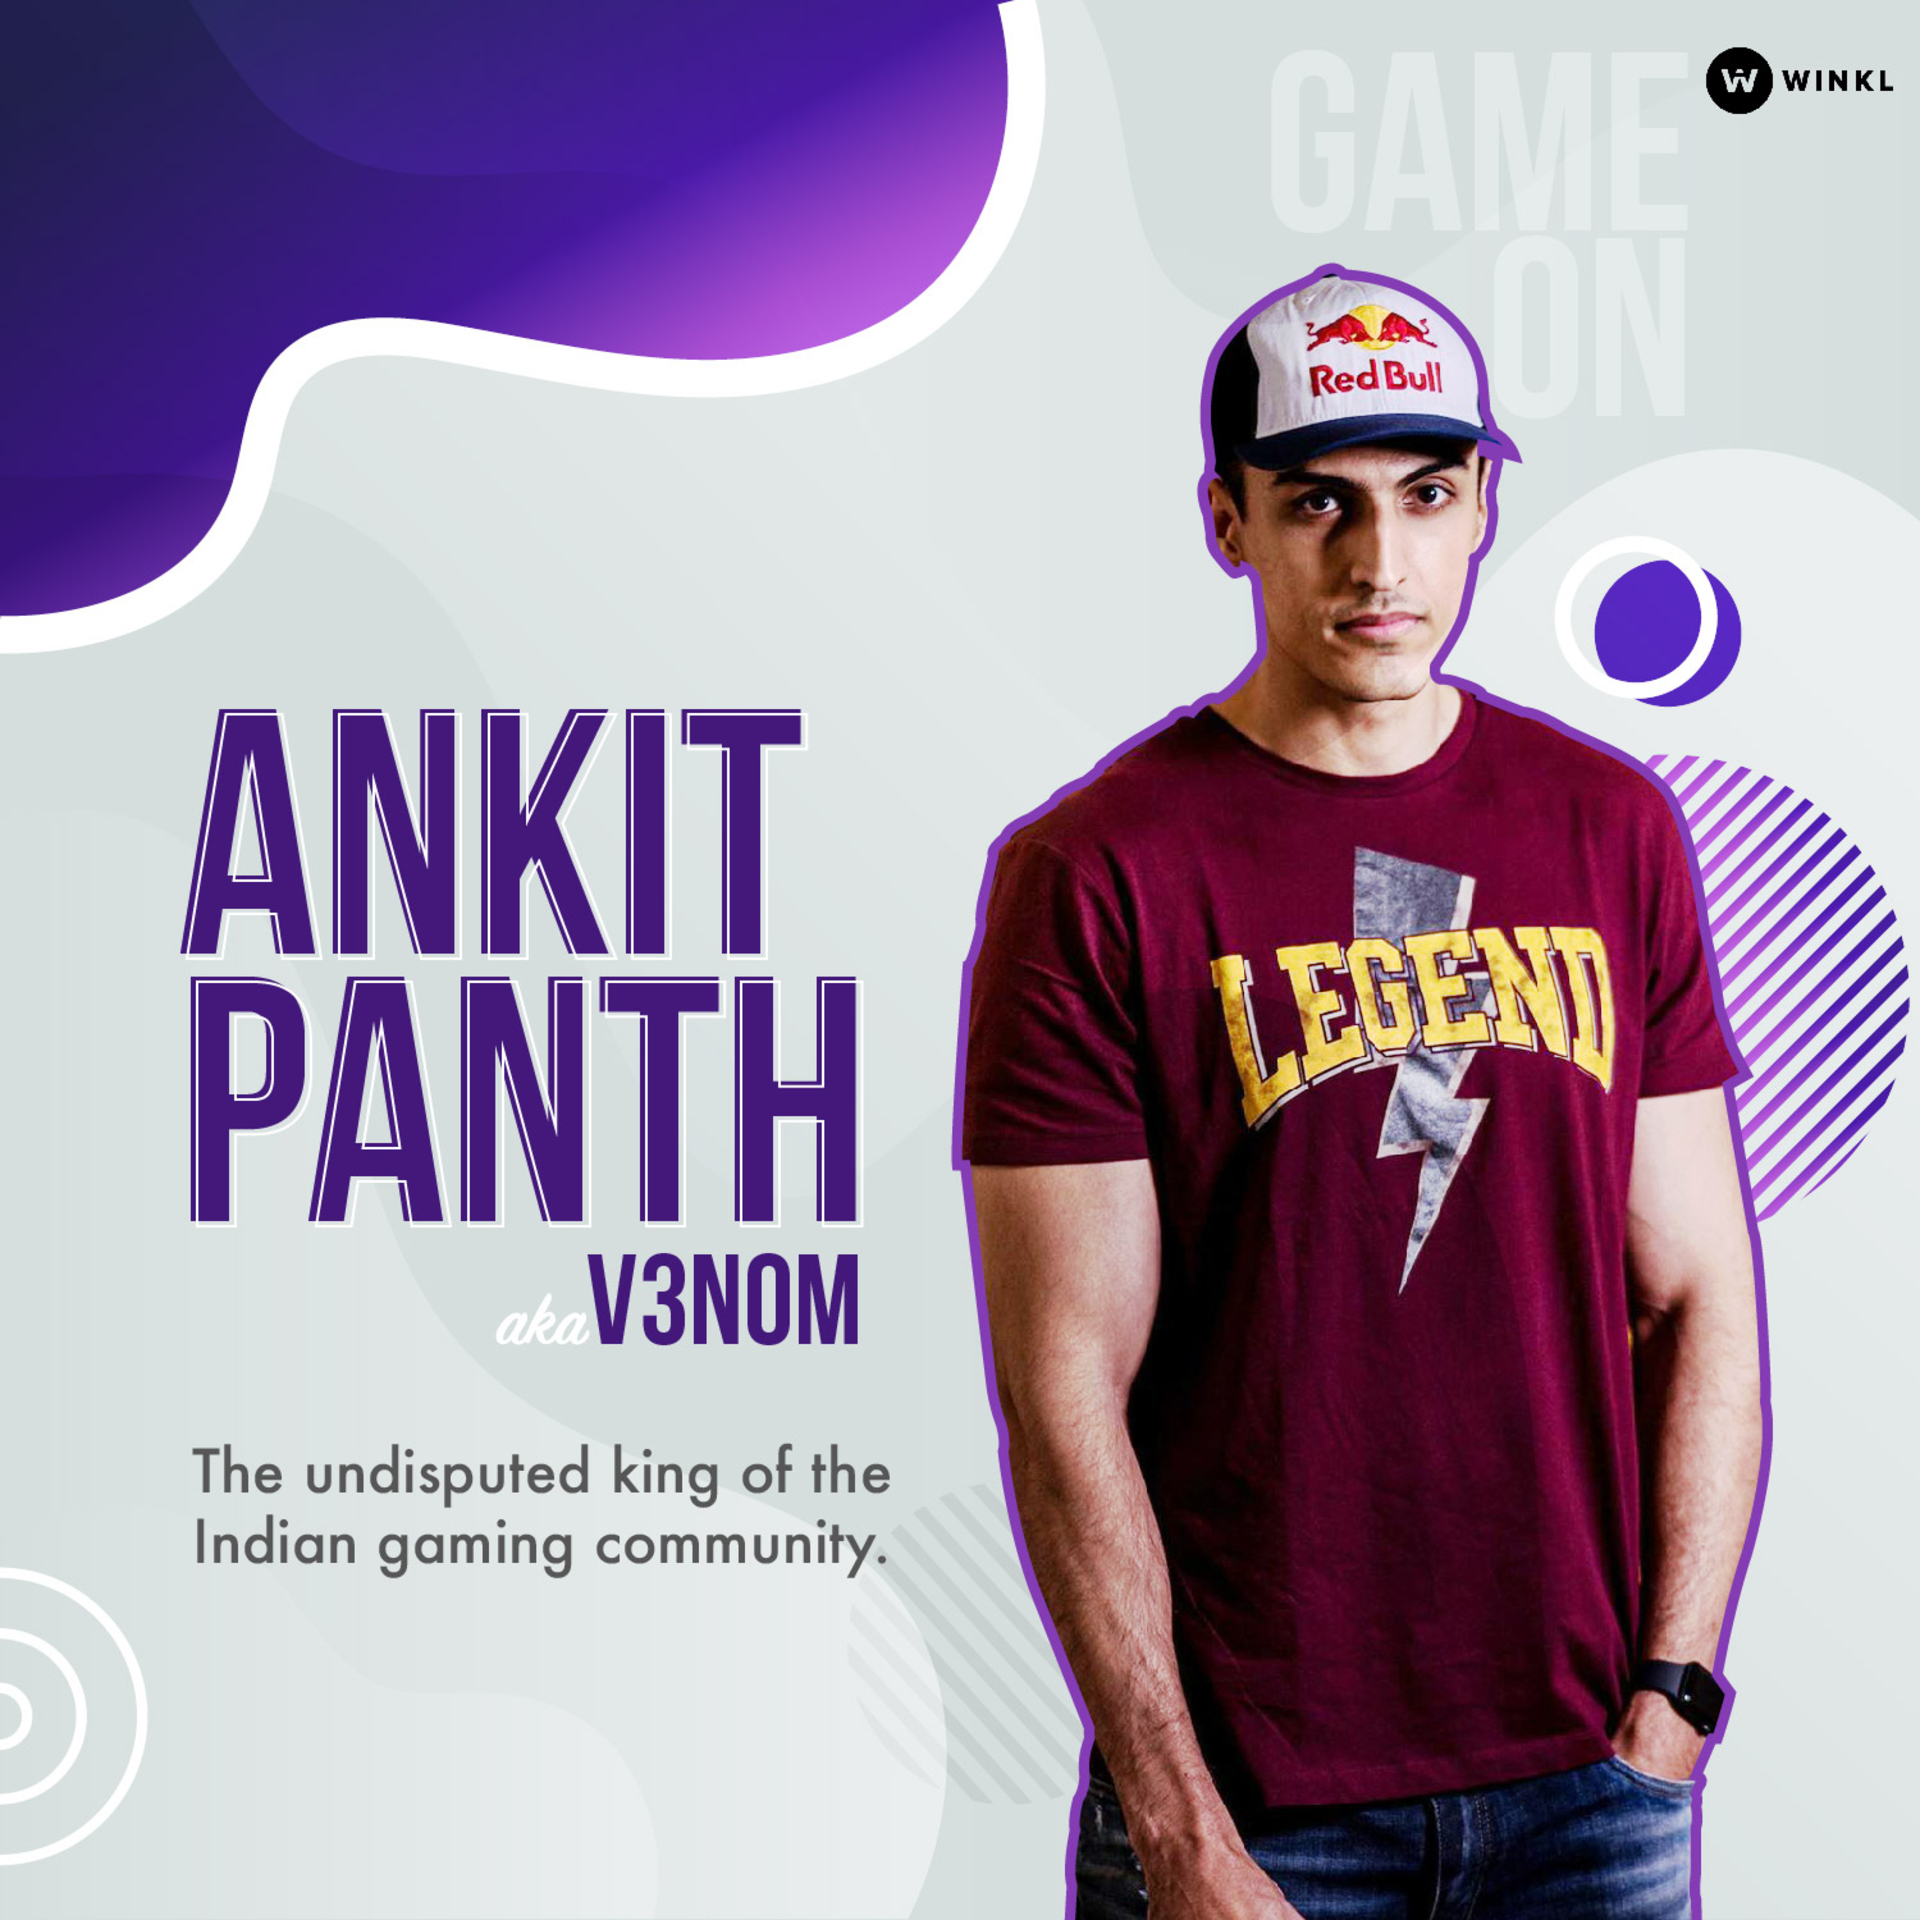 Ankit Panth - the undisputed king of the Indian gaming community image